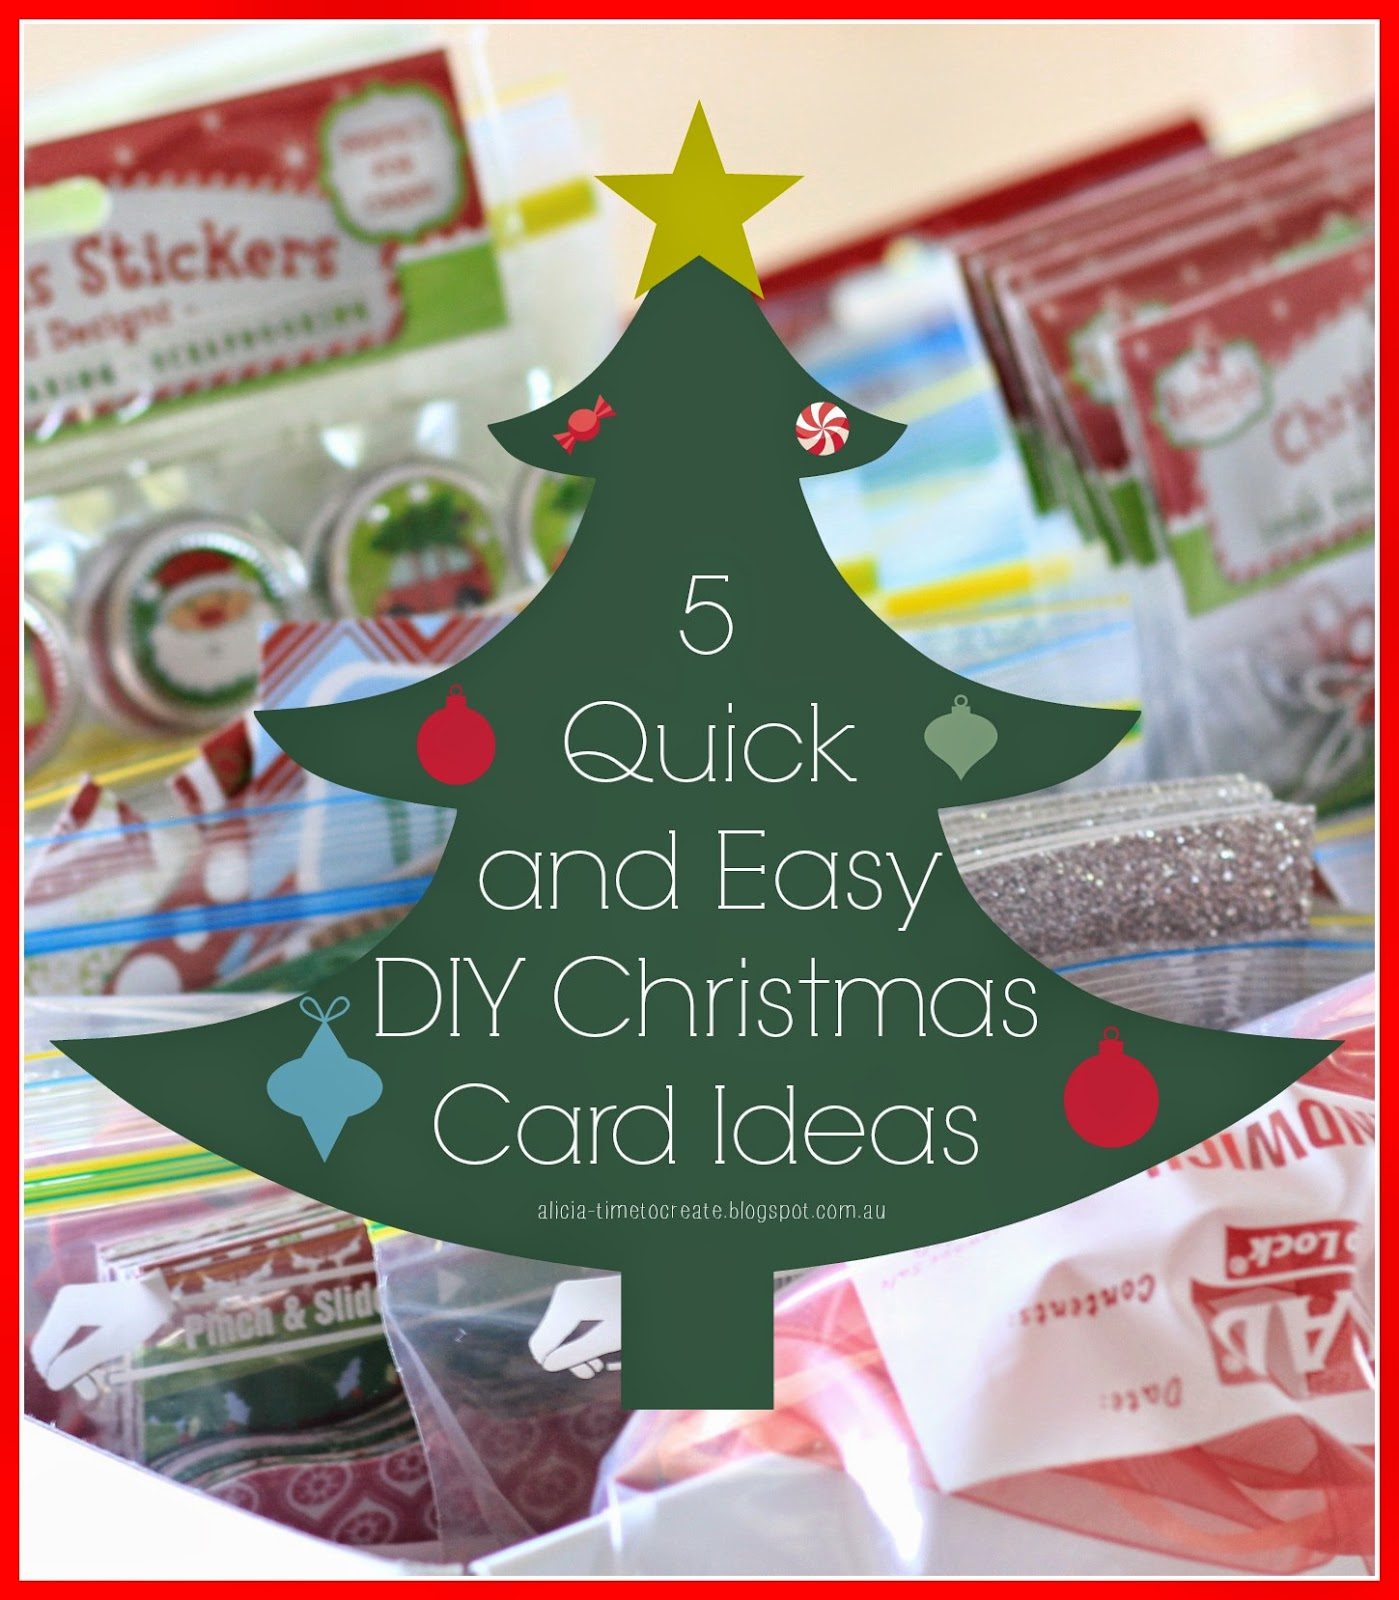 Time to create 5 quick and easy diy christmas card ideas 5 quick and easy diy christmas card ideas kristyandbryce Choice Image